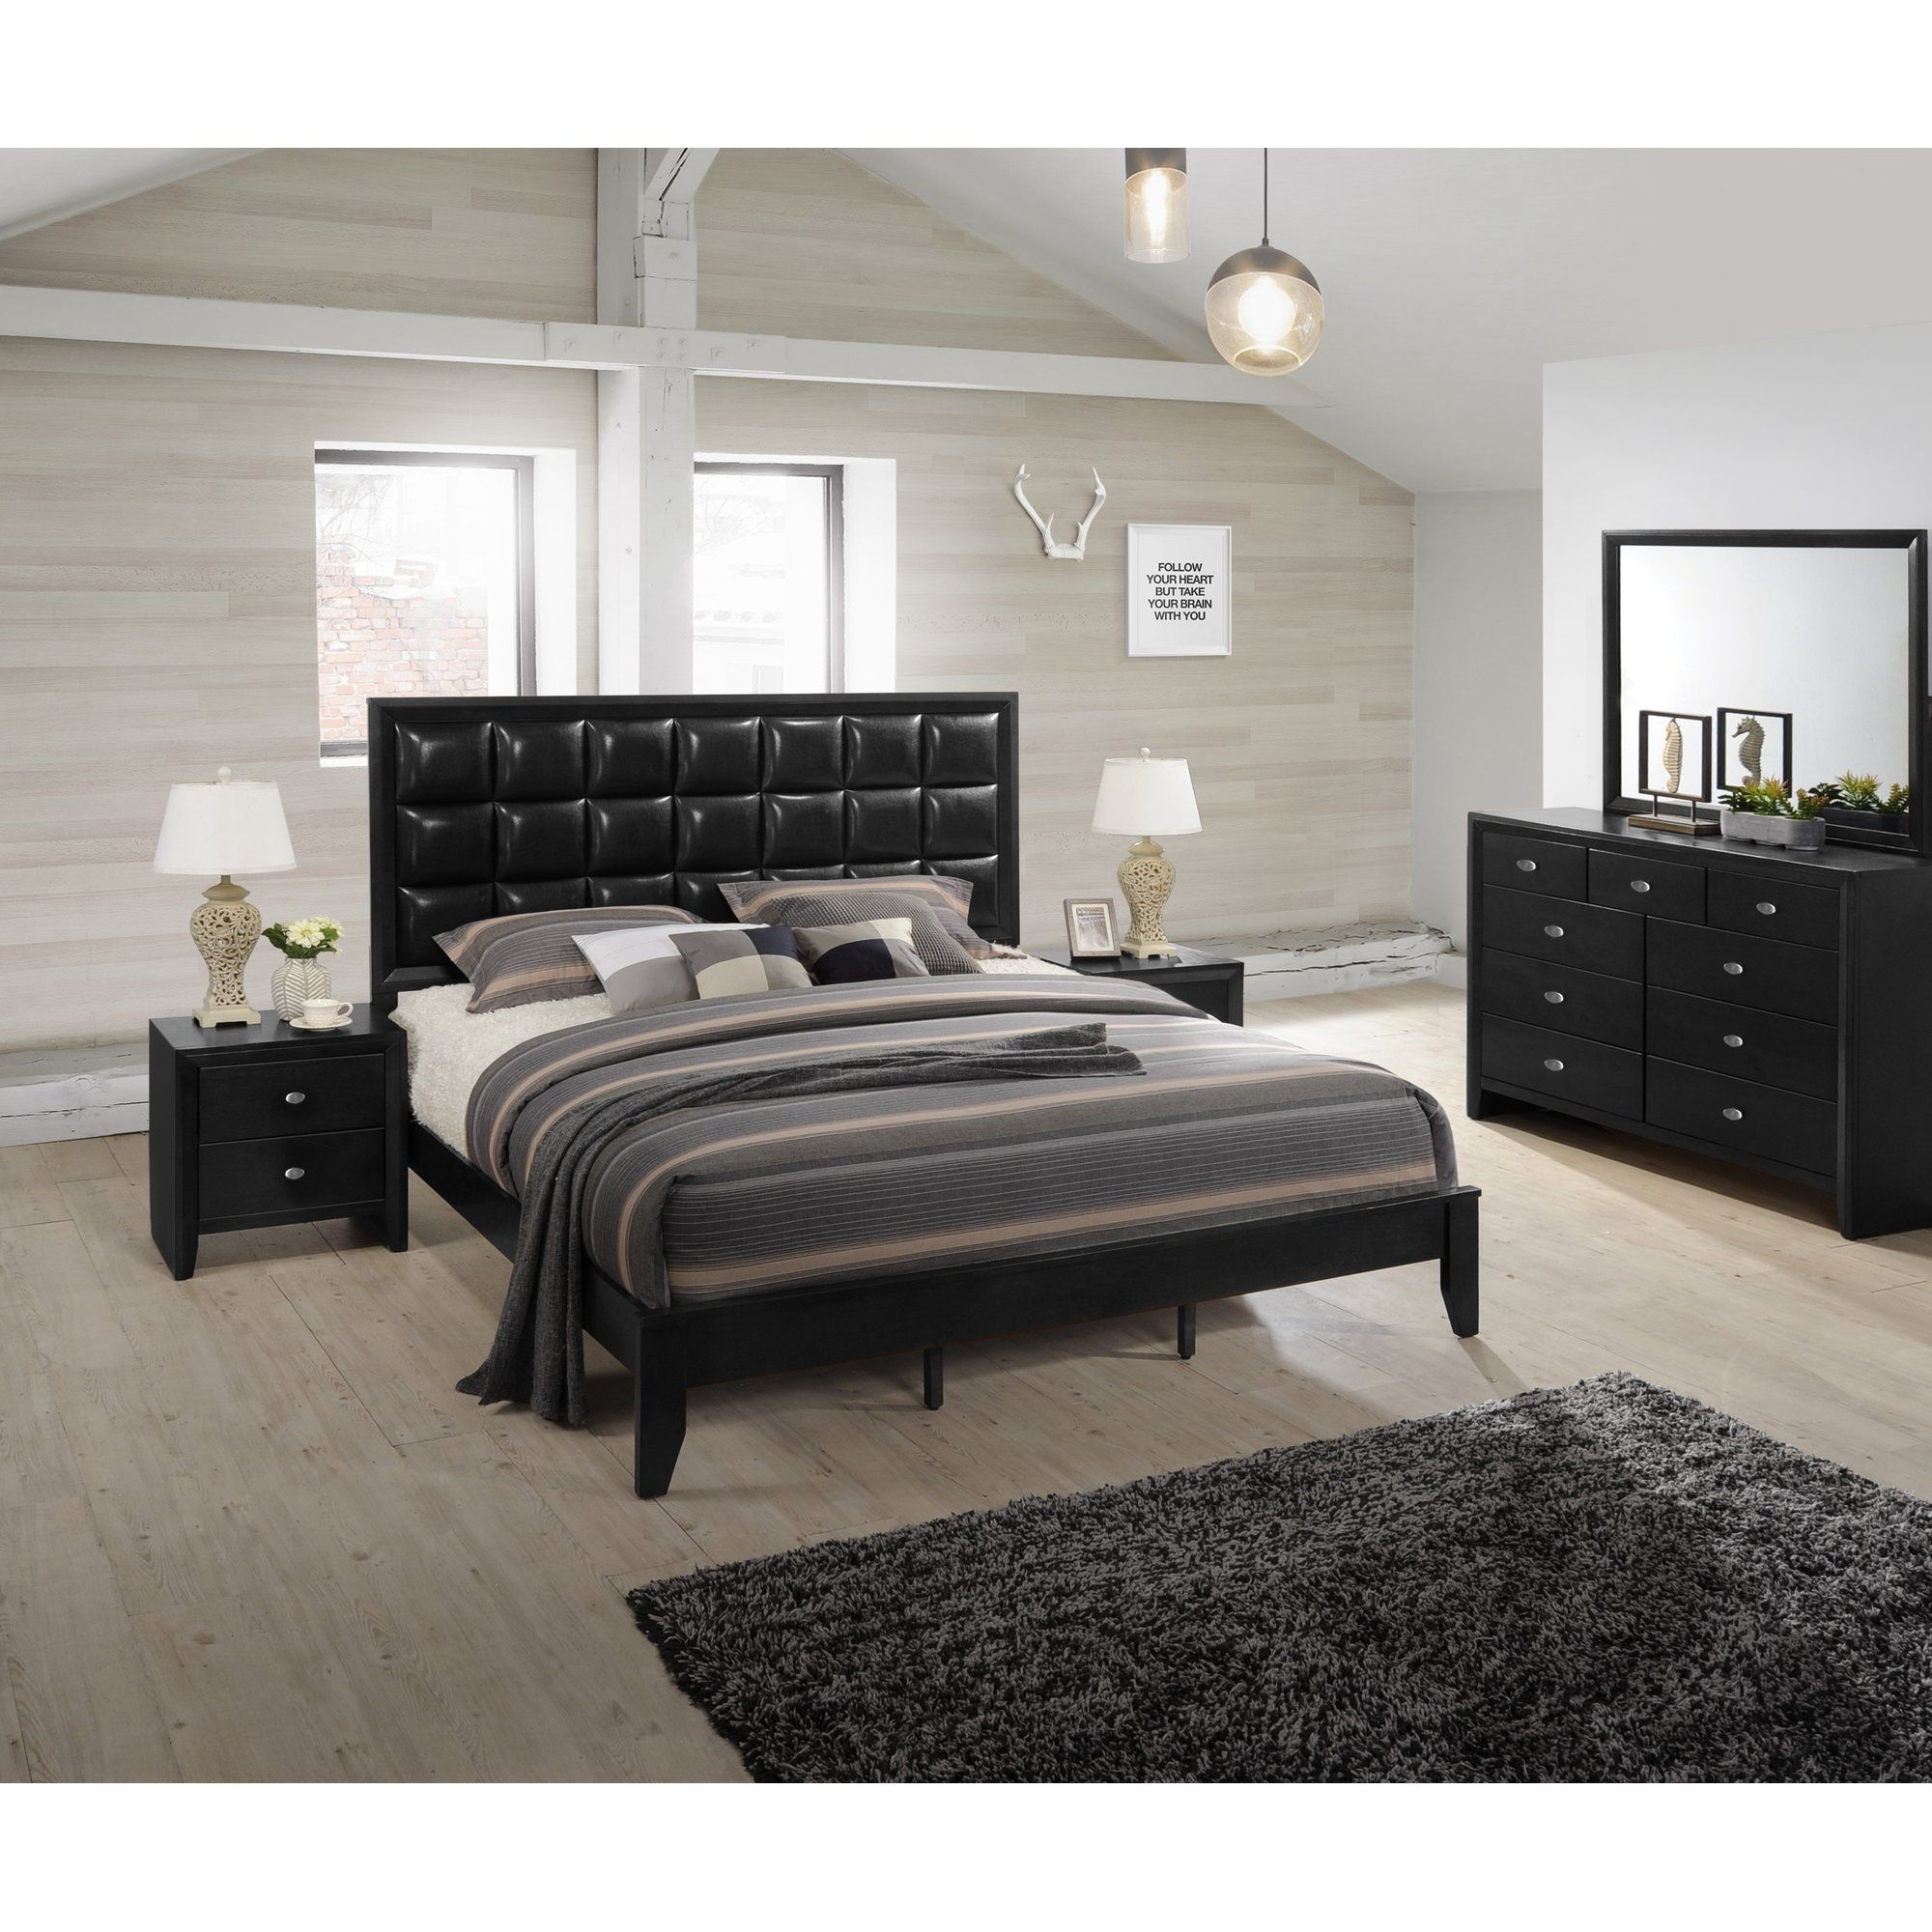 Black Bedroom Sets Black Platform King Bedroom Sets ...